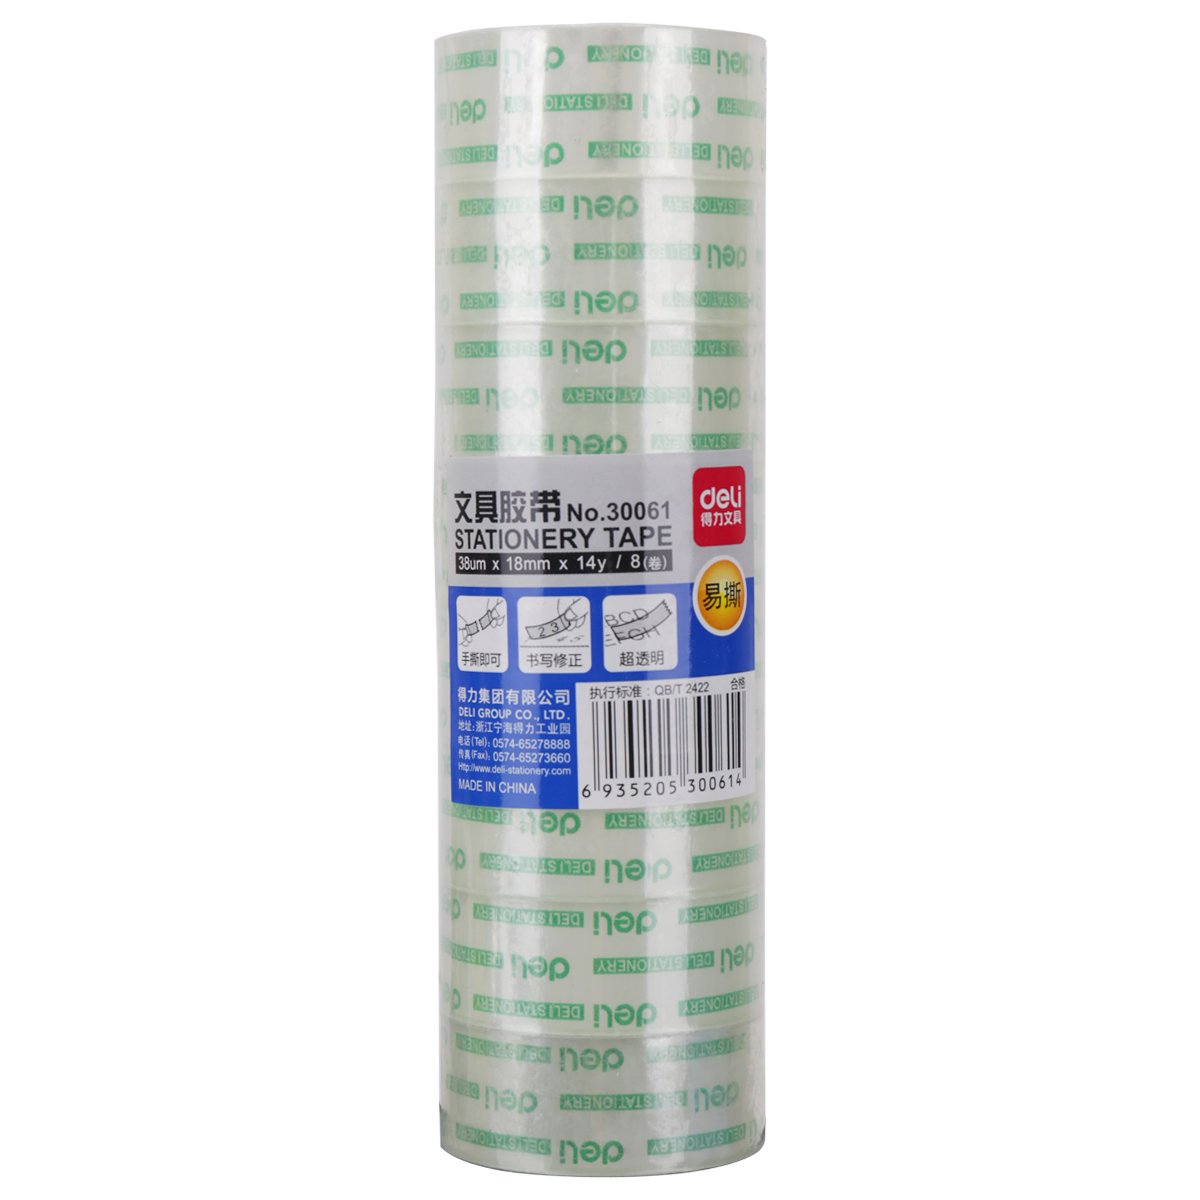 Deli 8 Rolls Office Adhesive Tape Transparent Clear Washi Type Strong Stickey Stationery Office School Supplies deli heavy duty hole punch office school supplies stationery 0150